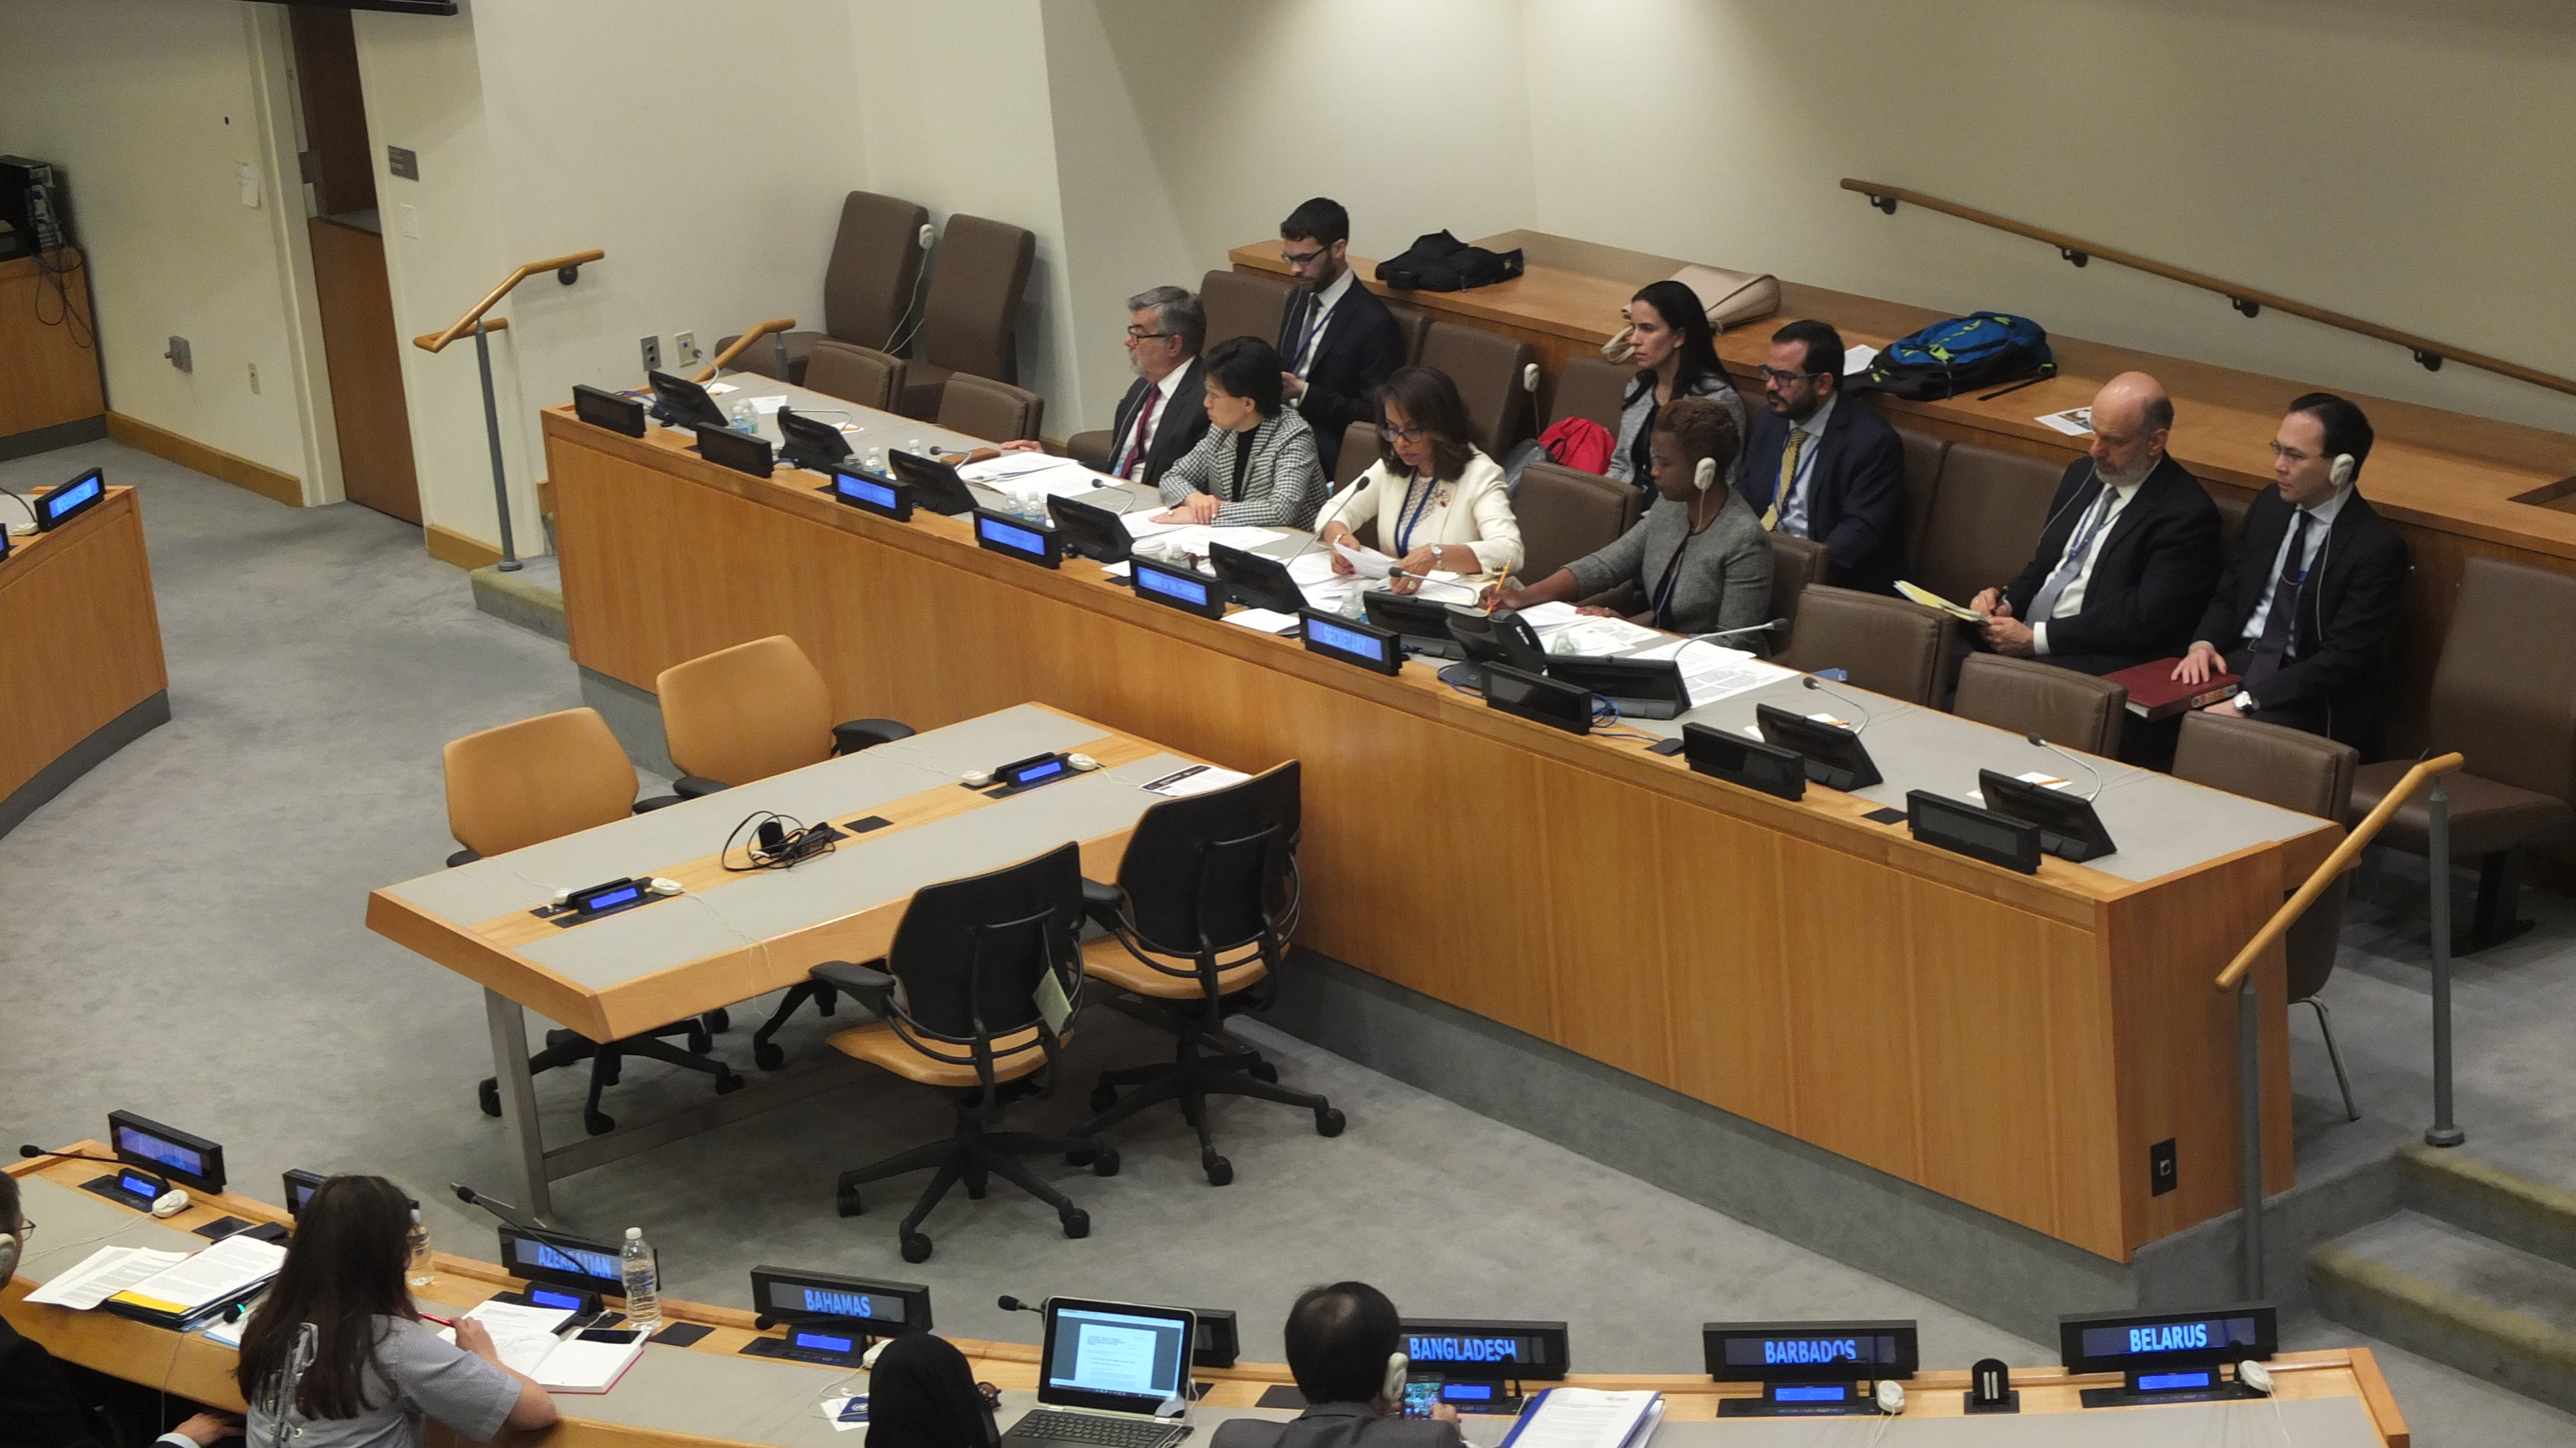 UN Conference on Treaty to Prohibit Nuclear Weapons